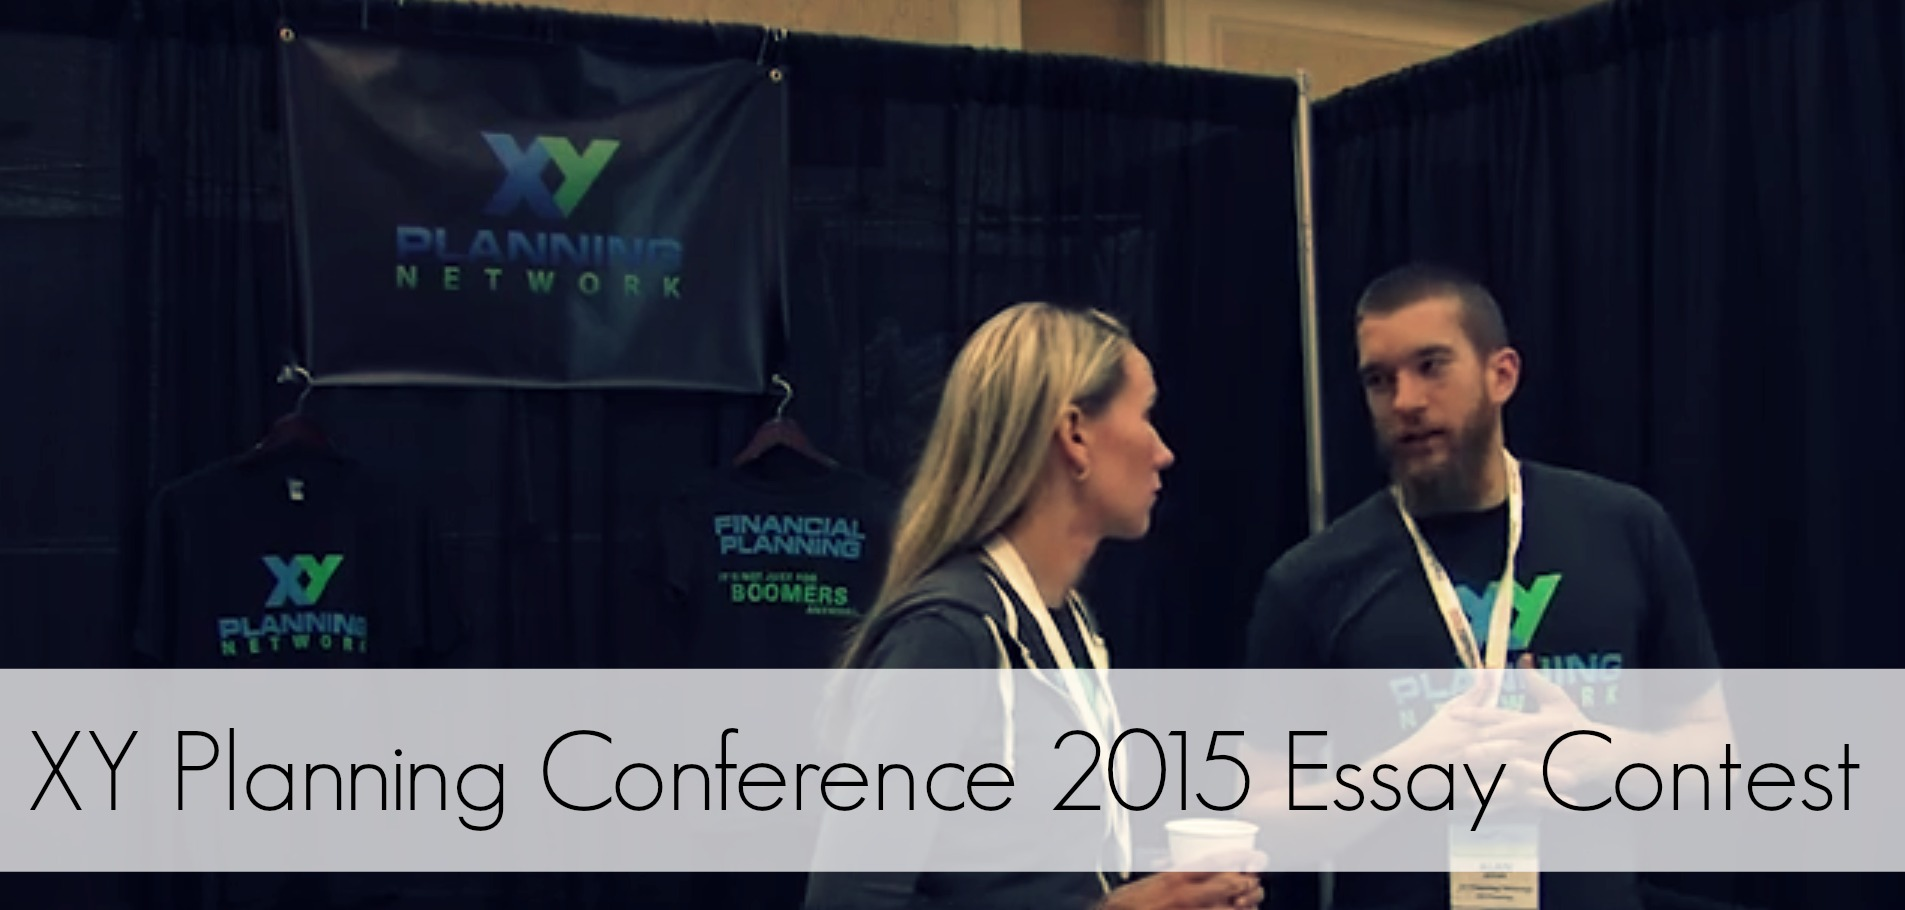 XY Planning Conference 2015 Essay Contest